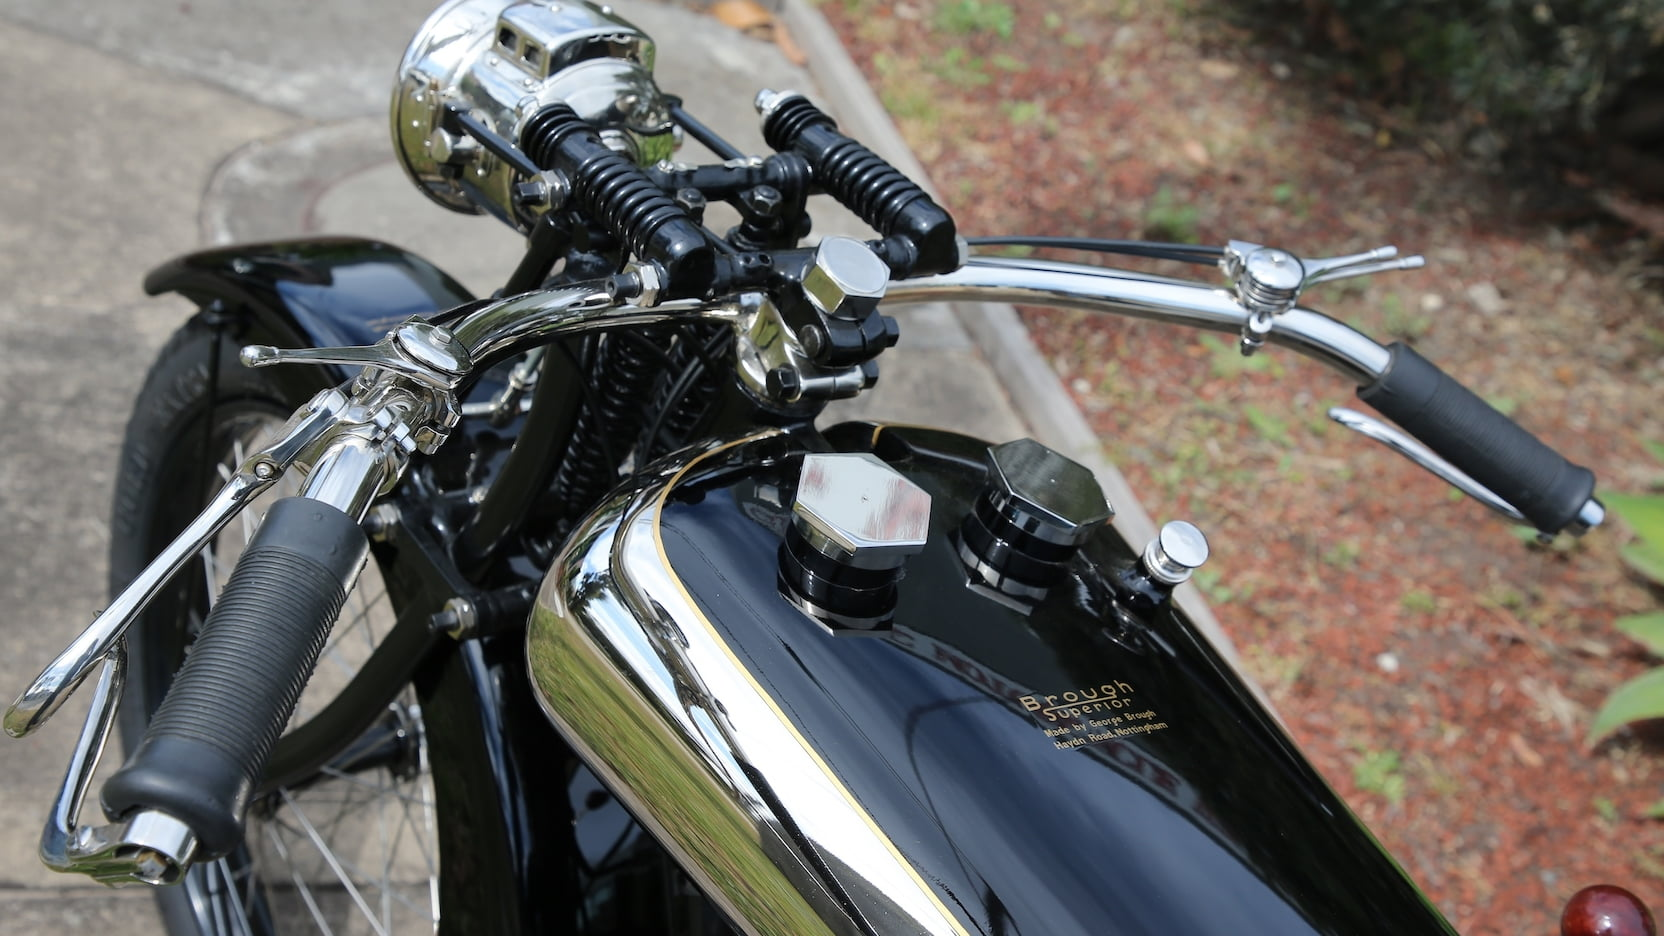 Brough Superior Mark1 motorcycle